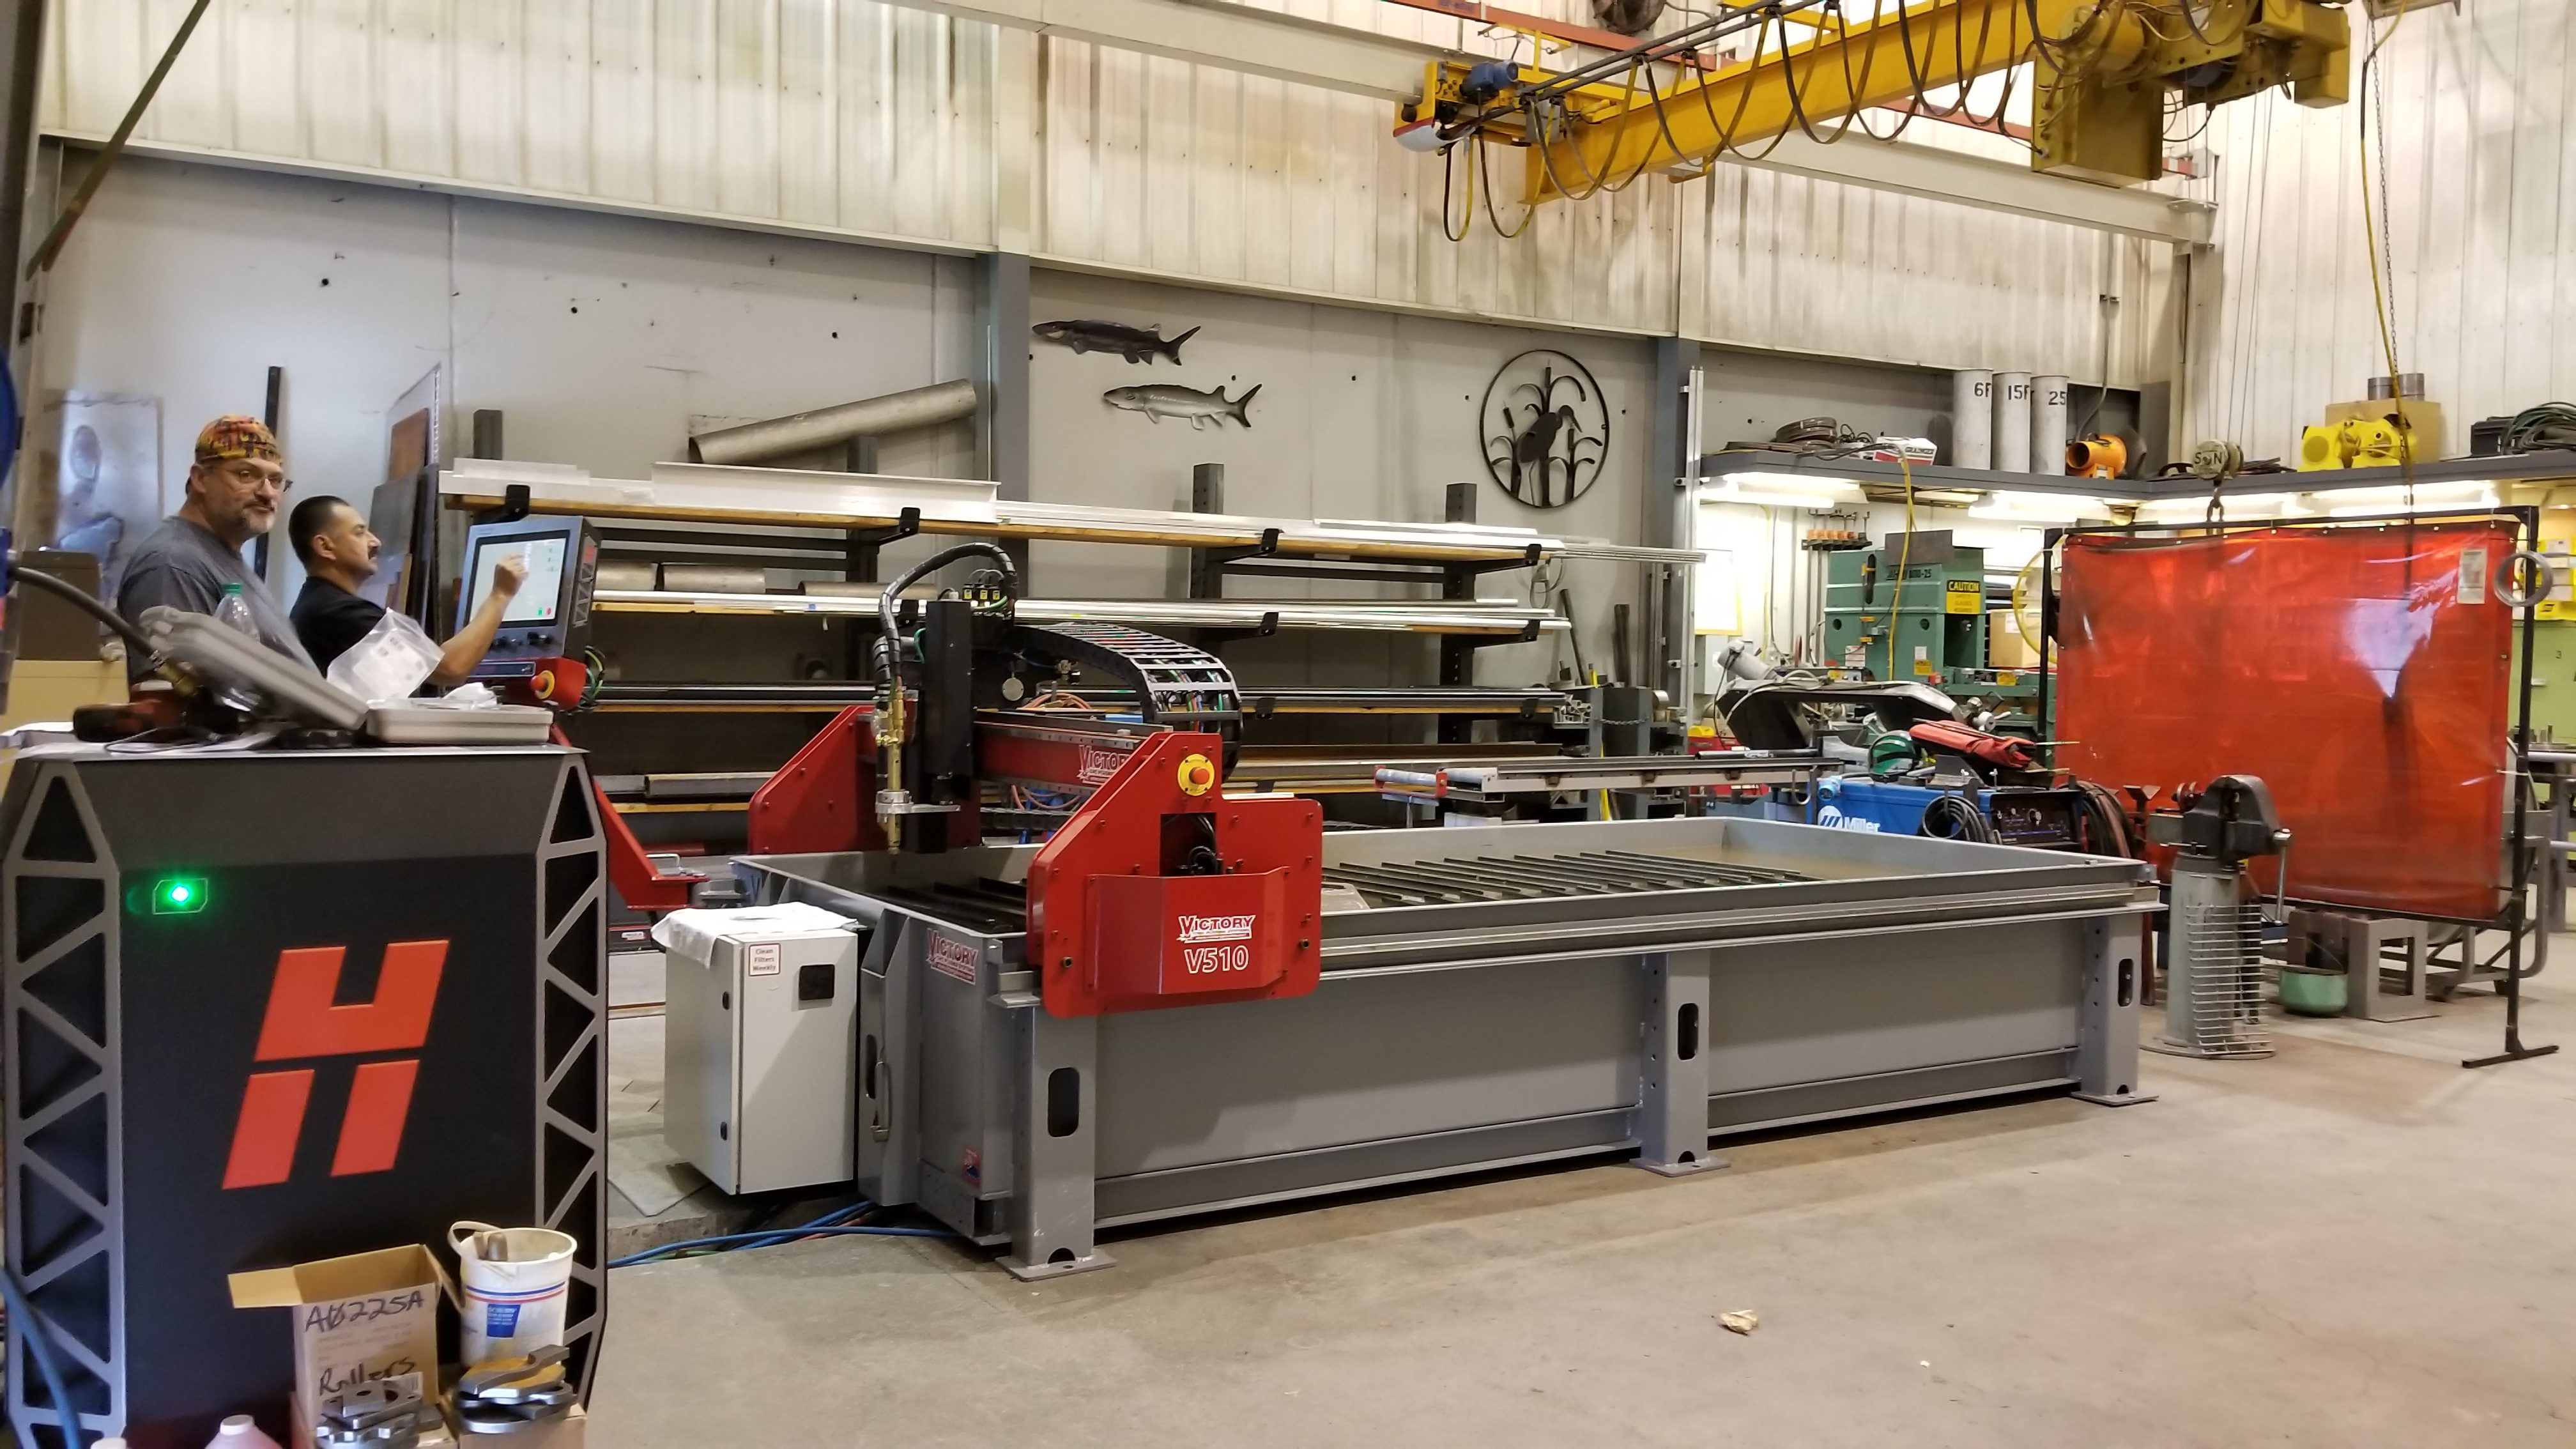 Victory CNC Plasma Systems 5' x 10' Hypertherm EDGE Connect & XPR300